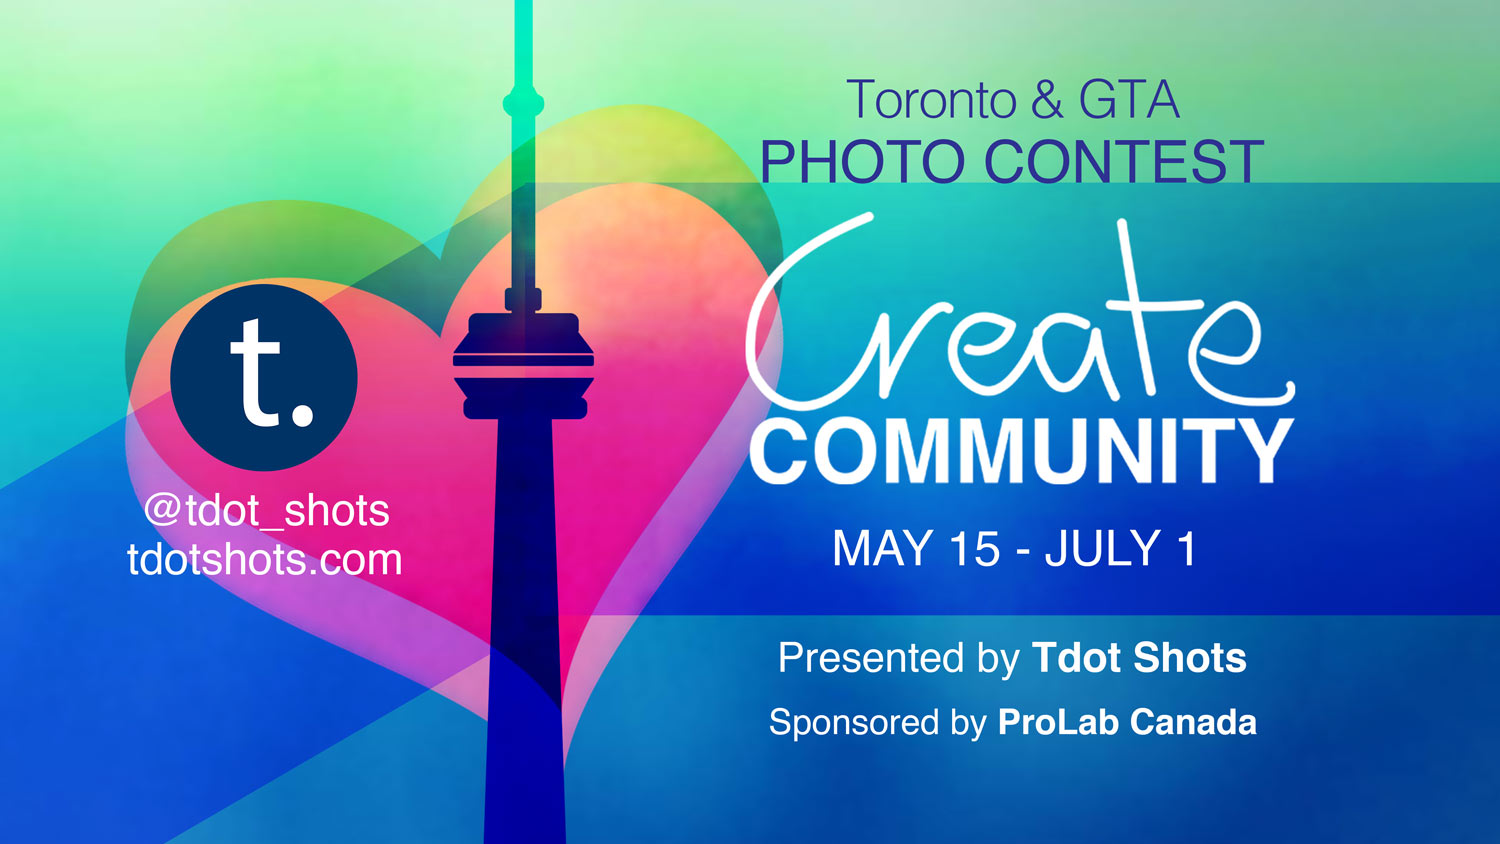 Tdot Shots Create Community Photo Contest 2020